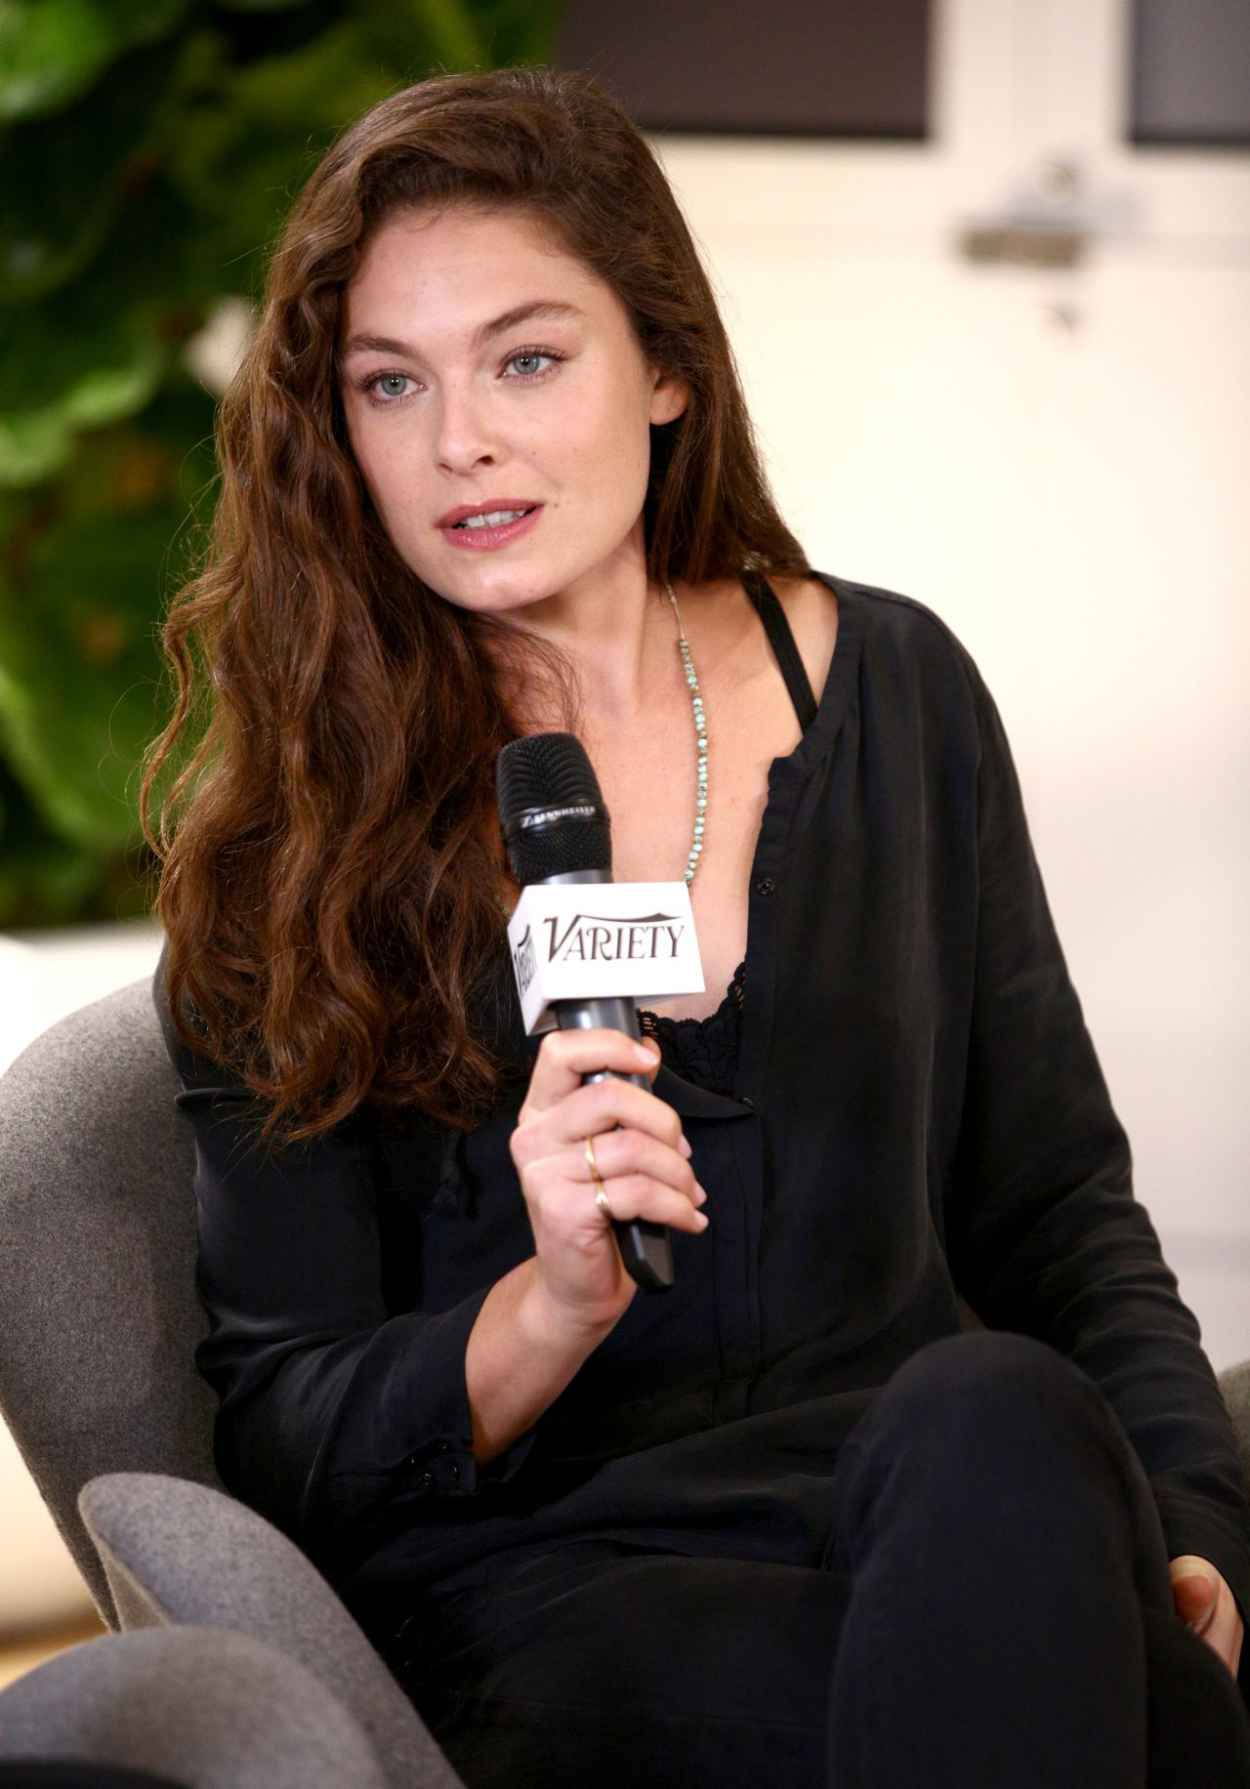 Alexa Davalos at Variety Awards Studio in West Hollywood - November 2015-4